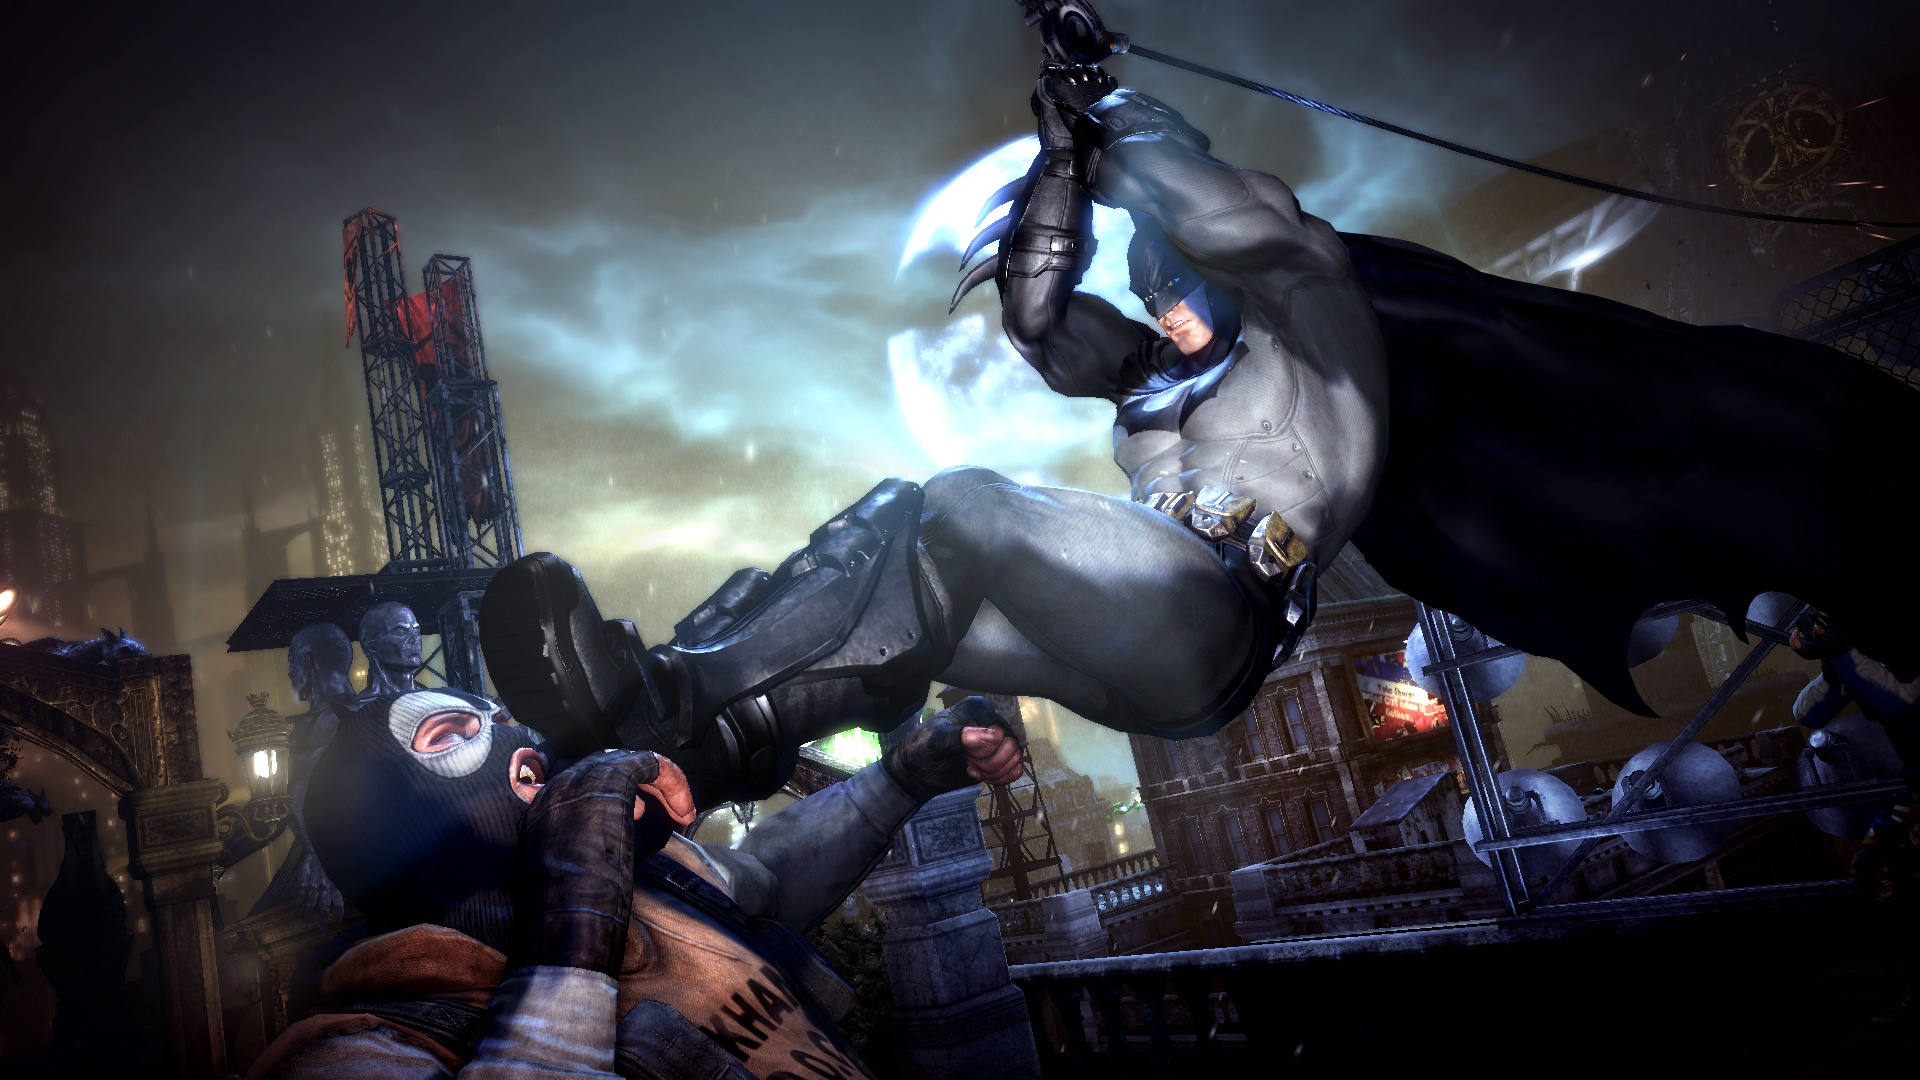 Wallpaper Batman Arkham City Download Wallpaper DaWallpaperz 1920x1080